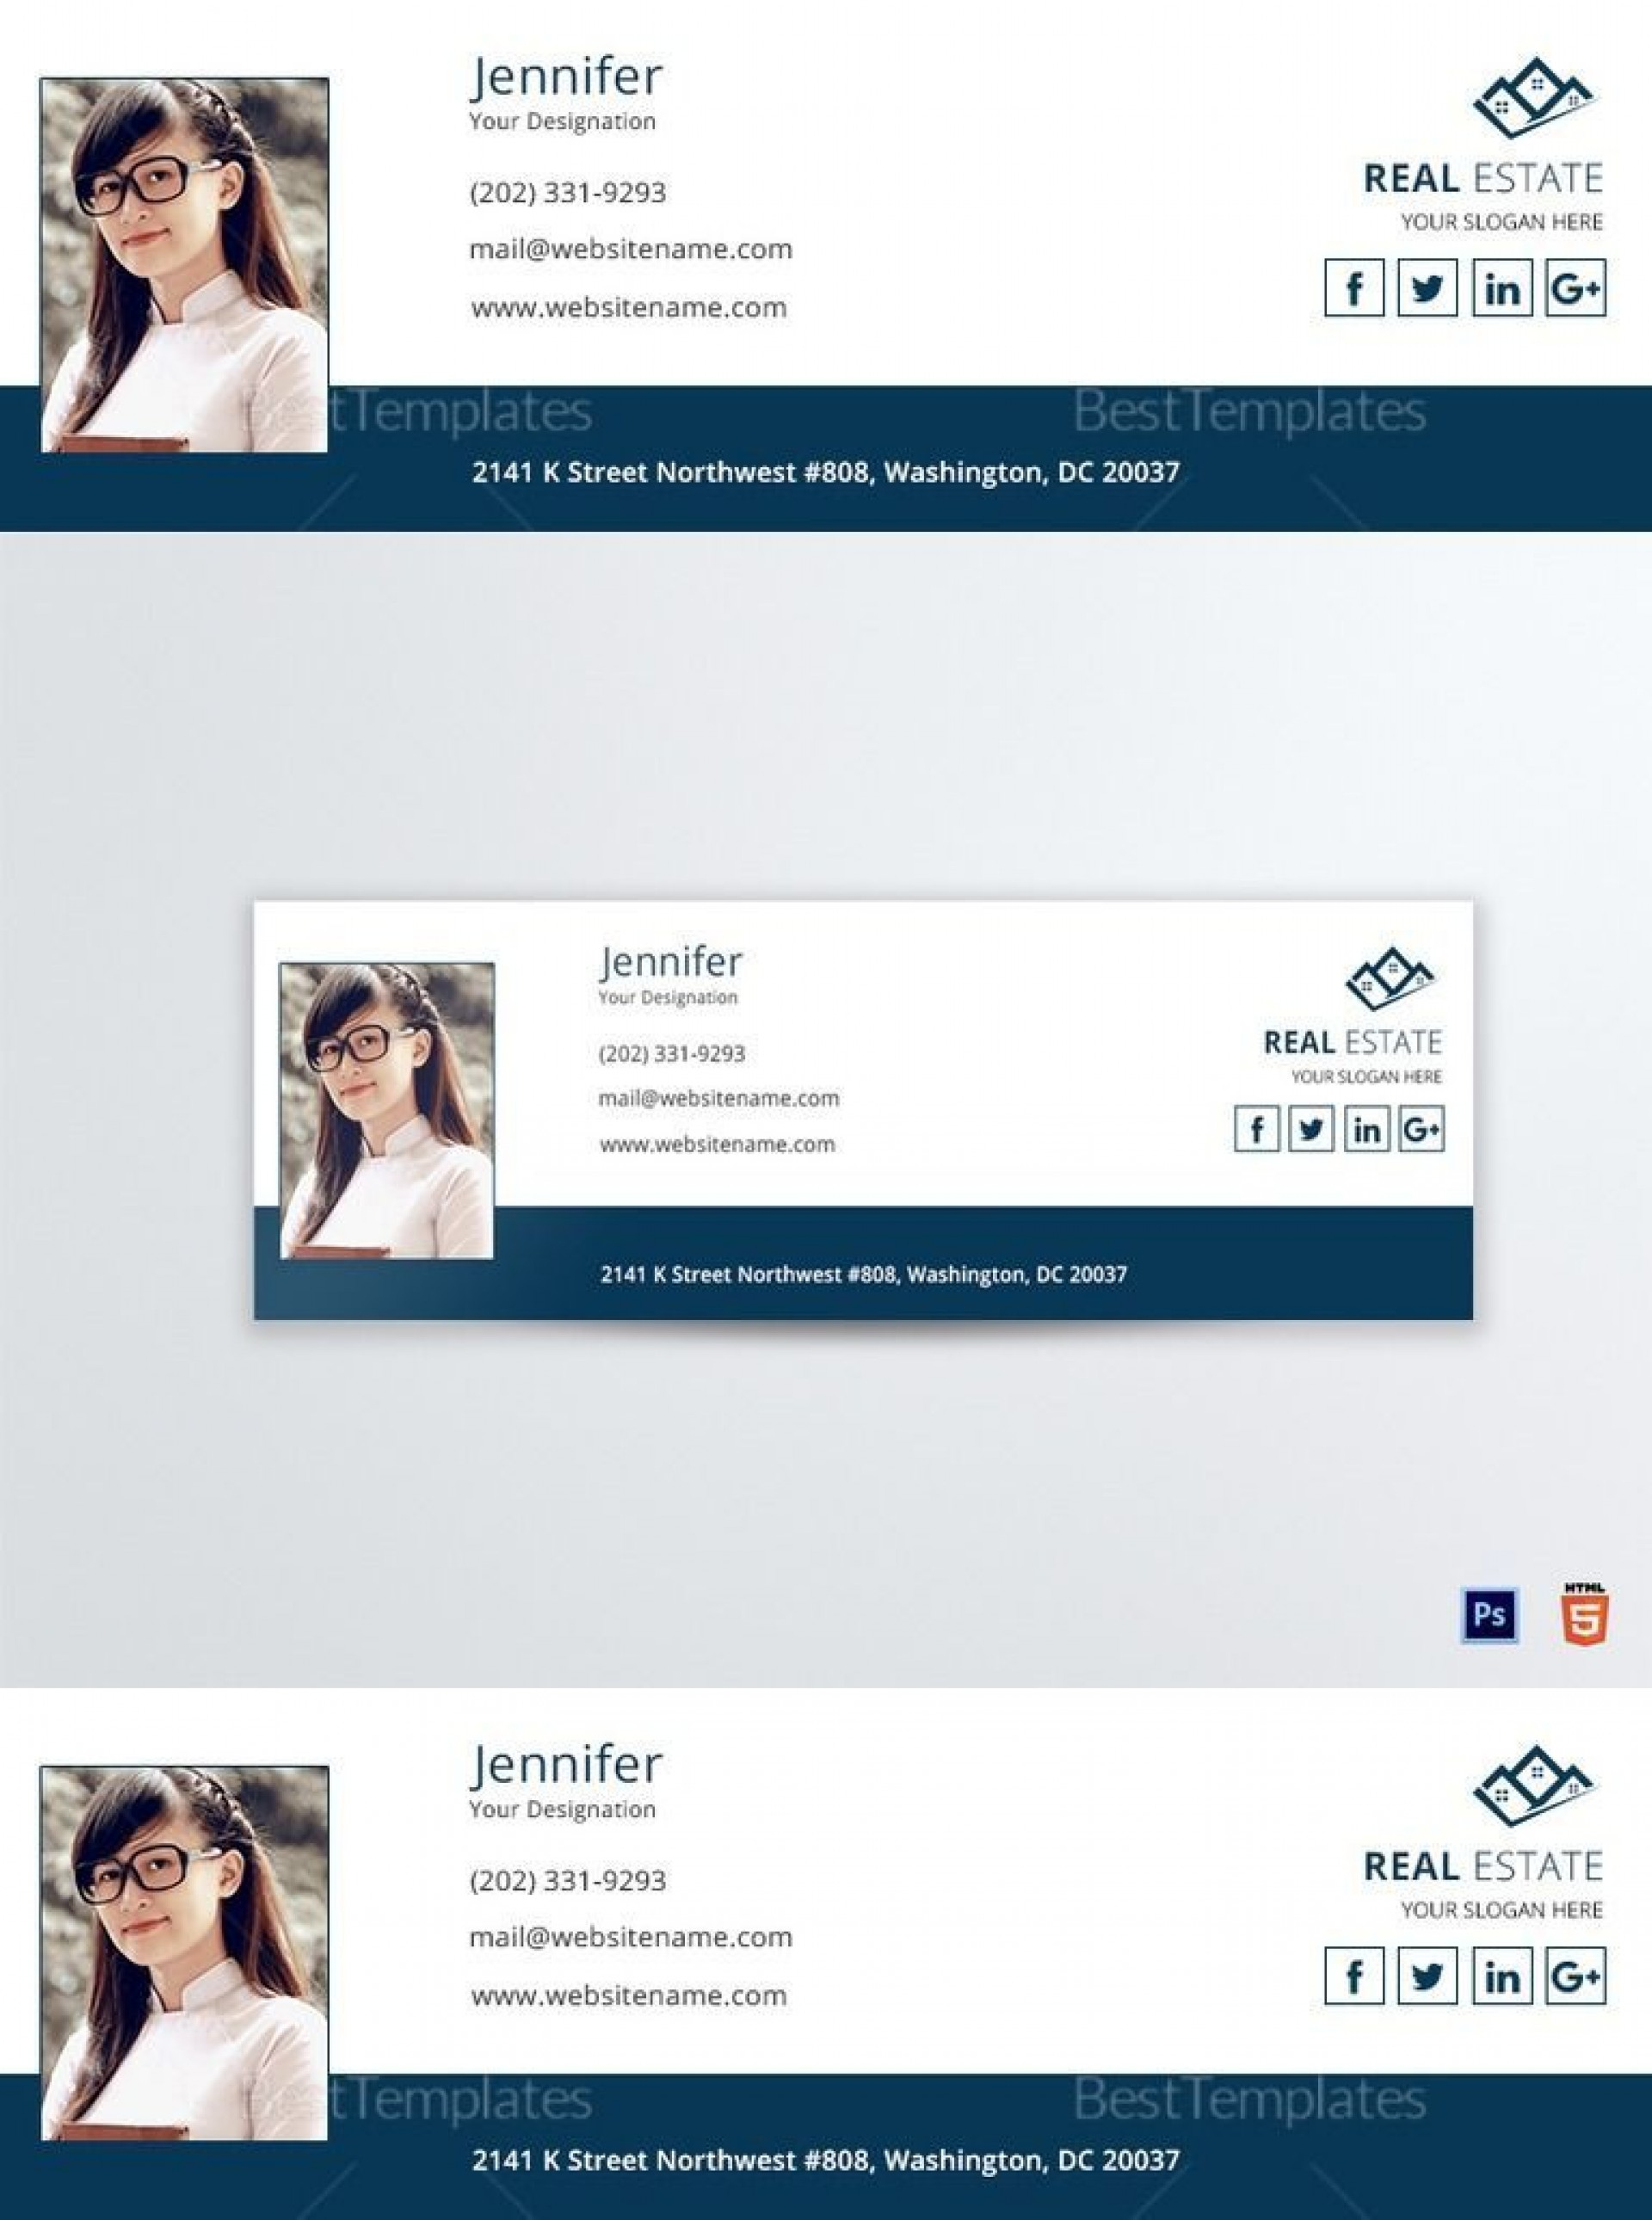 001 Wondrou Outlook Email Signature Template Example Inspiration  Examples1920